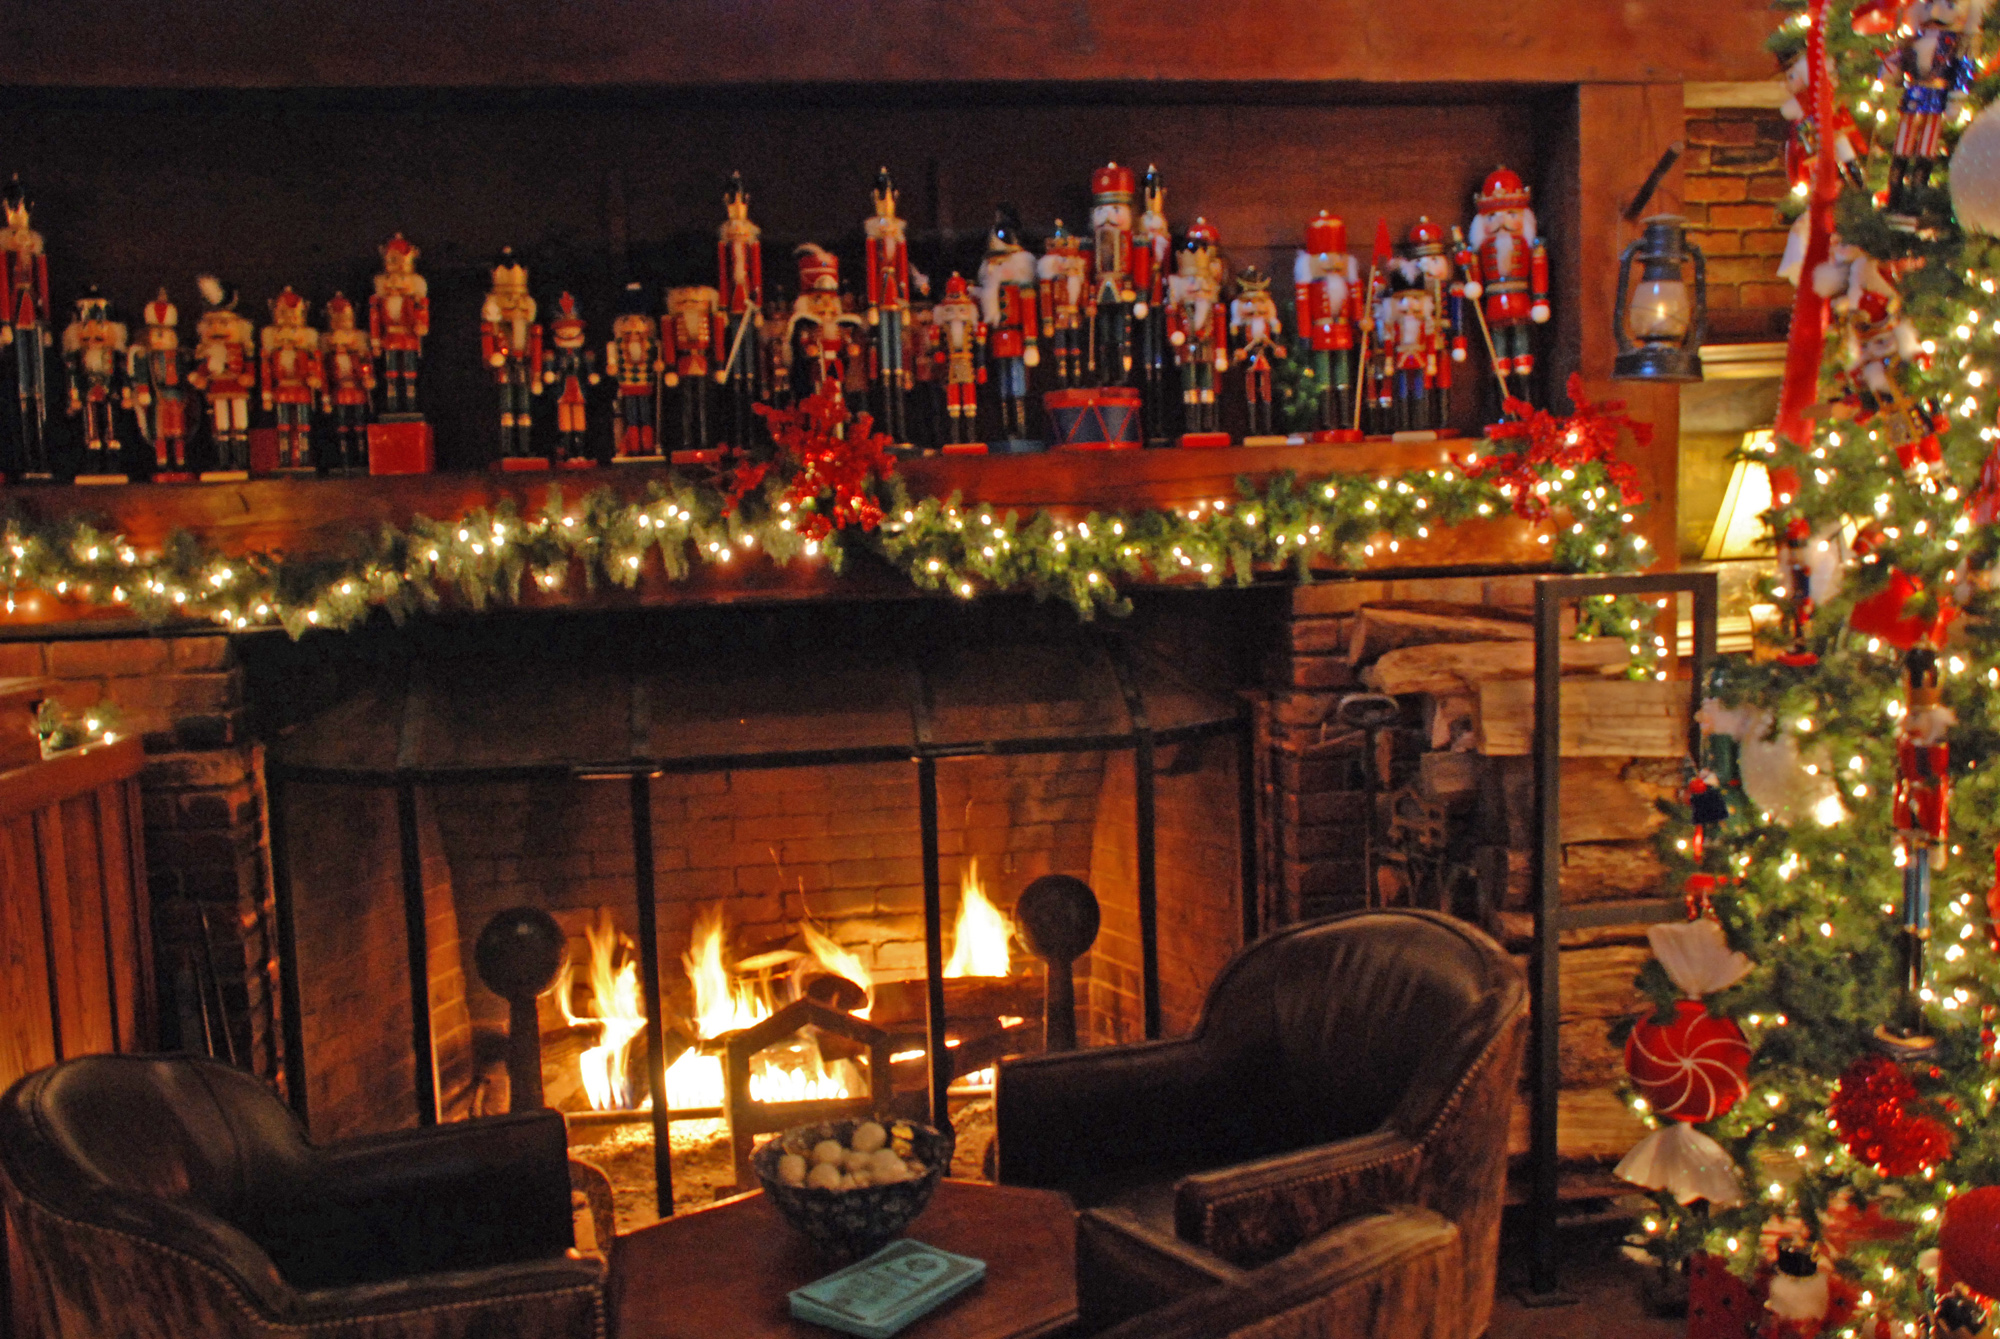 Christmas Fireplace Wallpaper Wallpapers9 2000x1339